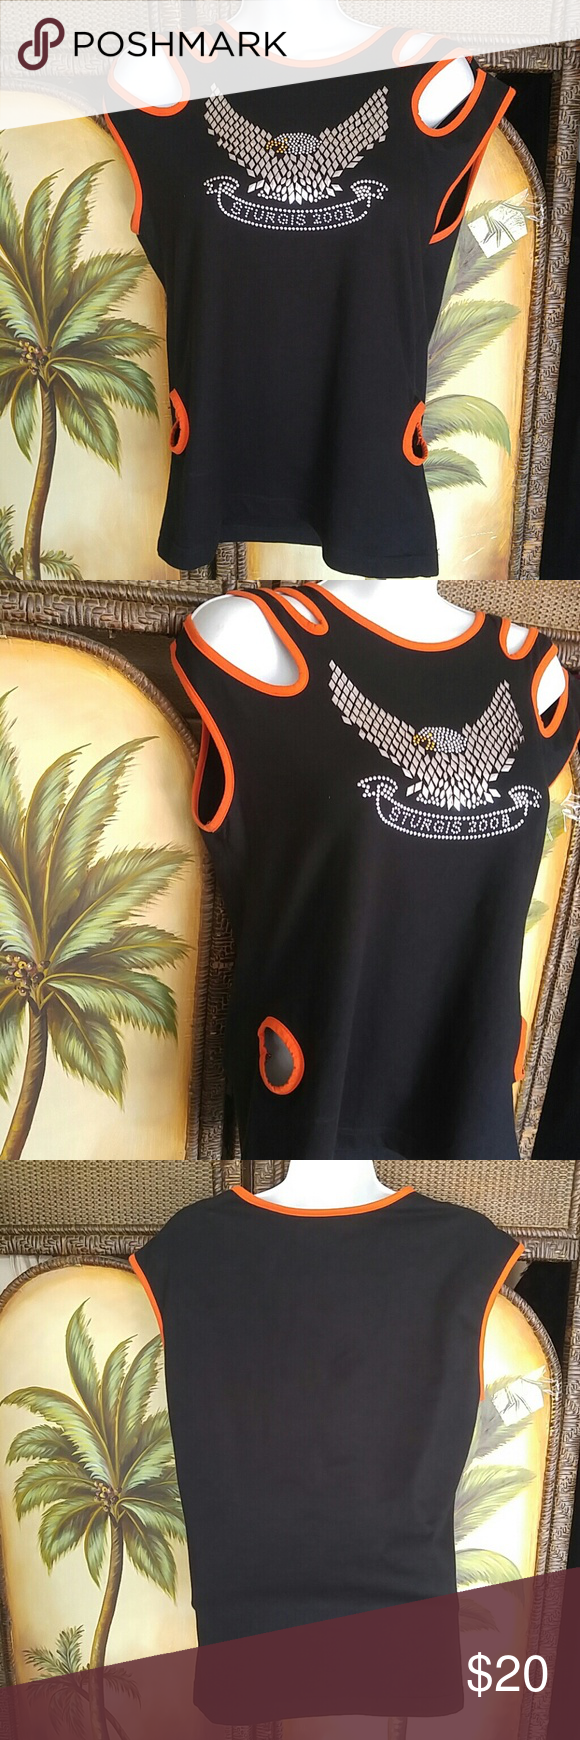 Biker sexy tank top Stored and worn one time No fading or flaws Orange and black Spandex and cotton Harley. Tag sports gallery Tops Tank Tops